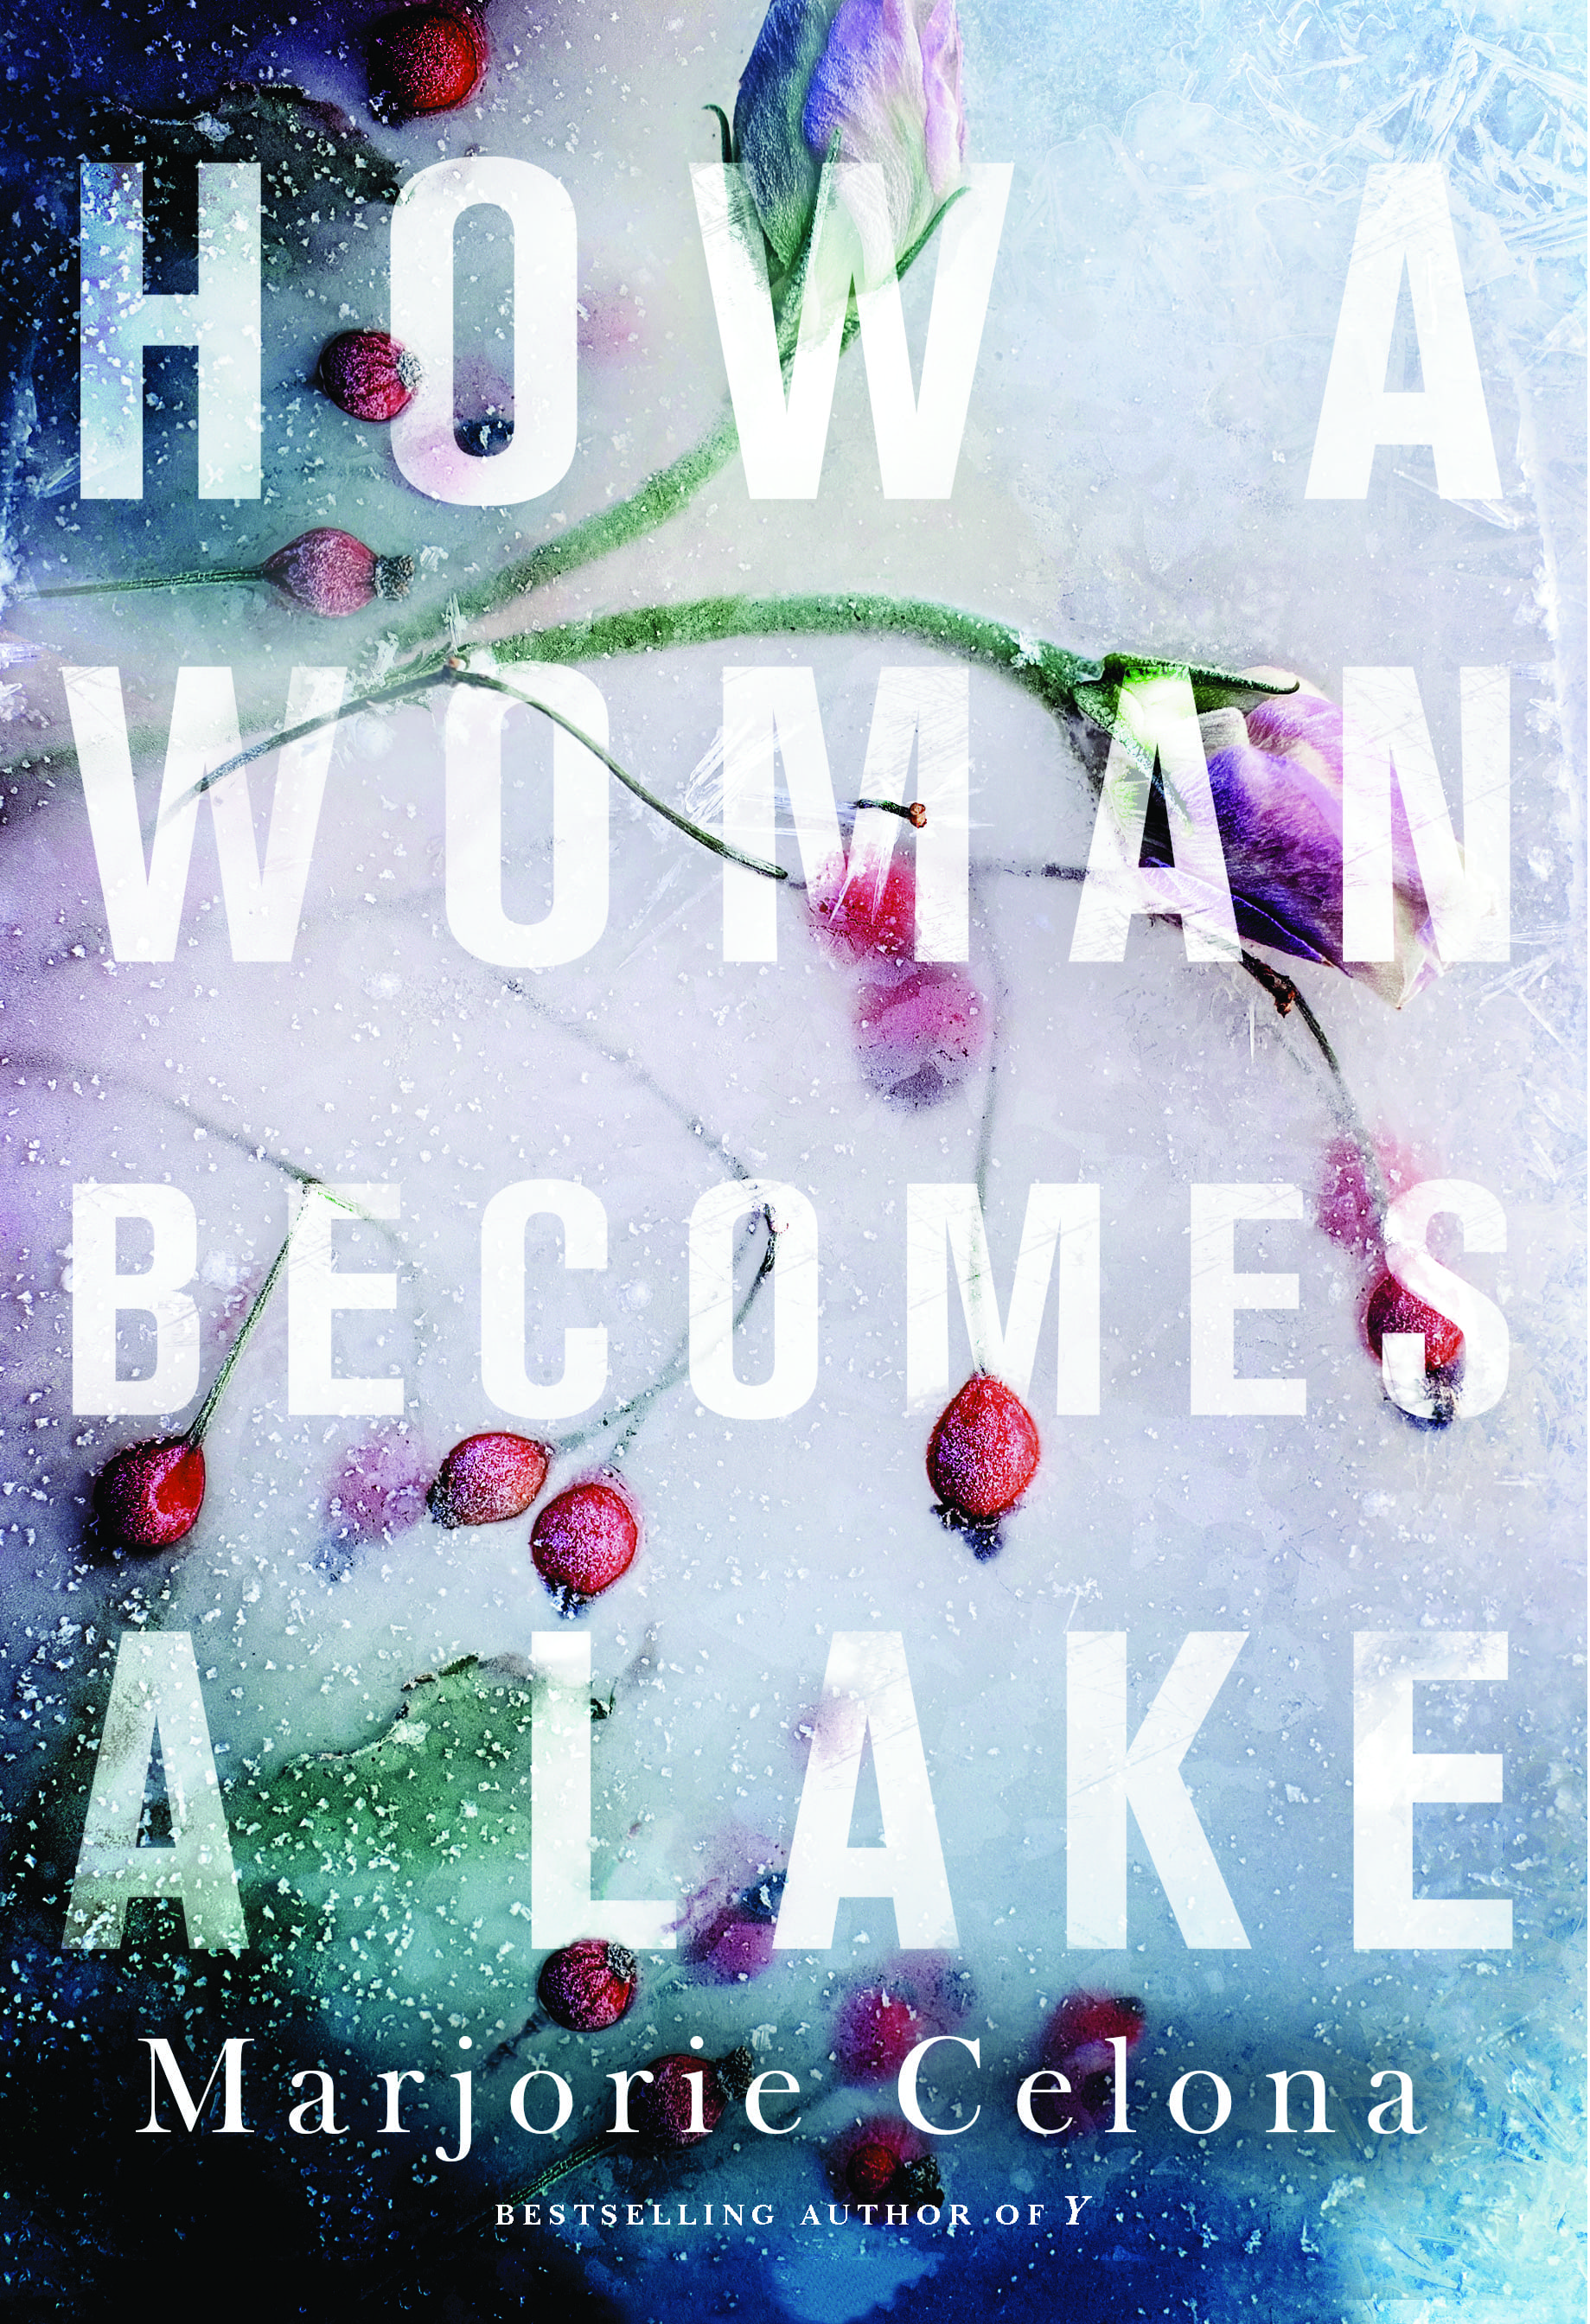 The cover of How A Woman Becomes A Lake